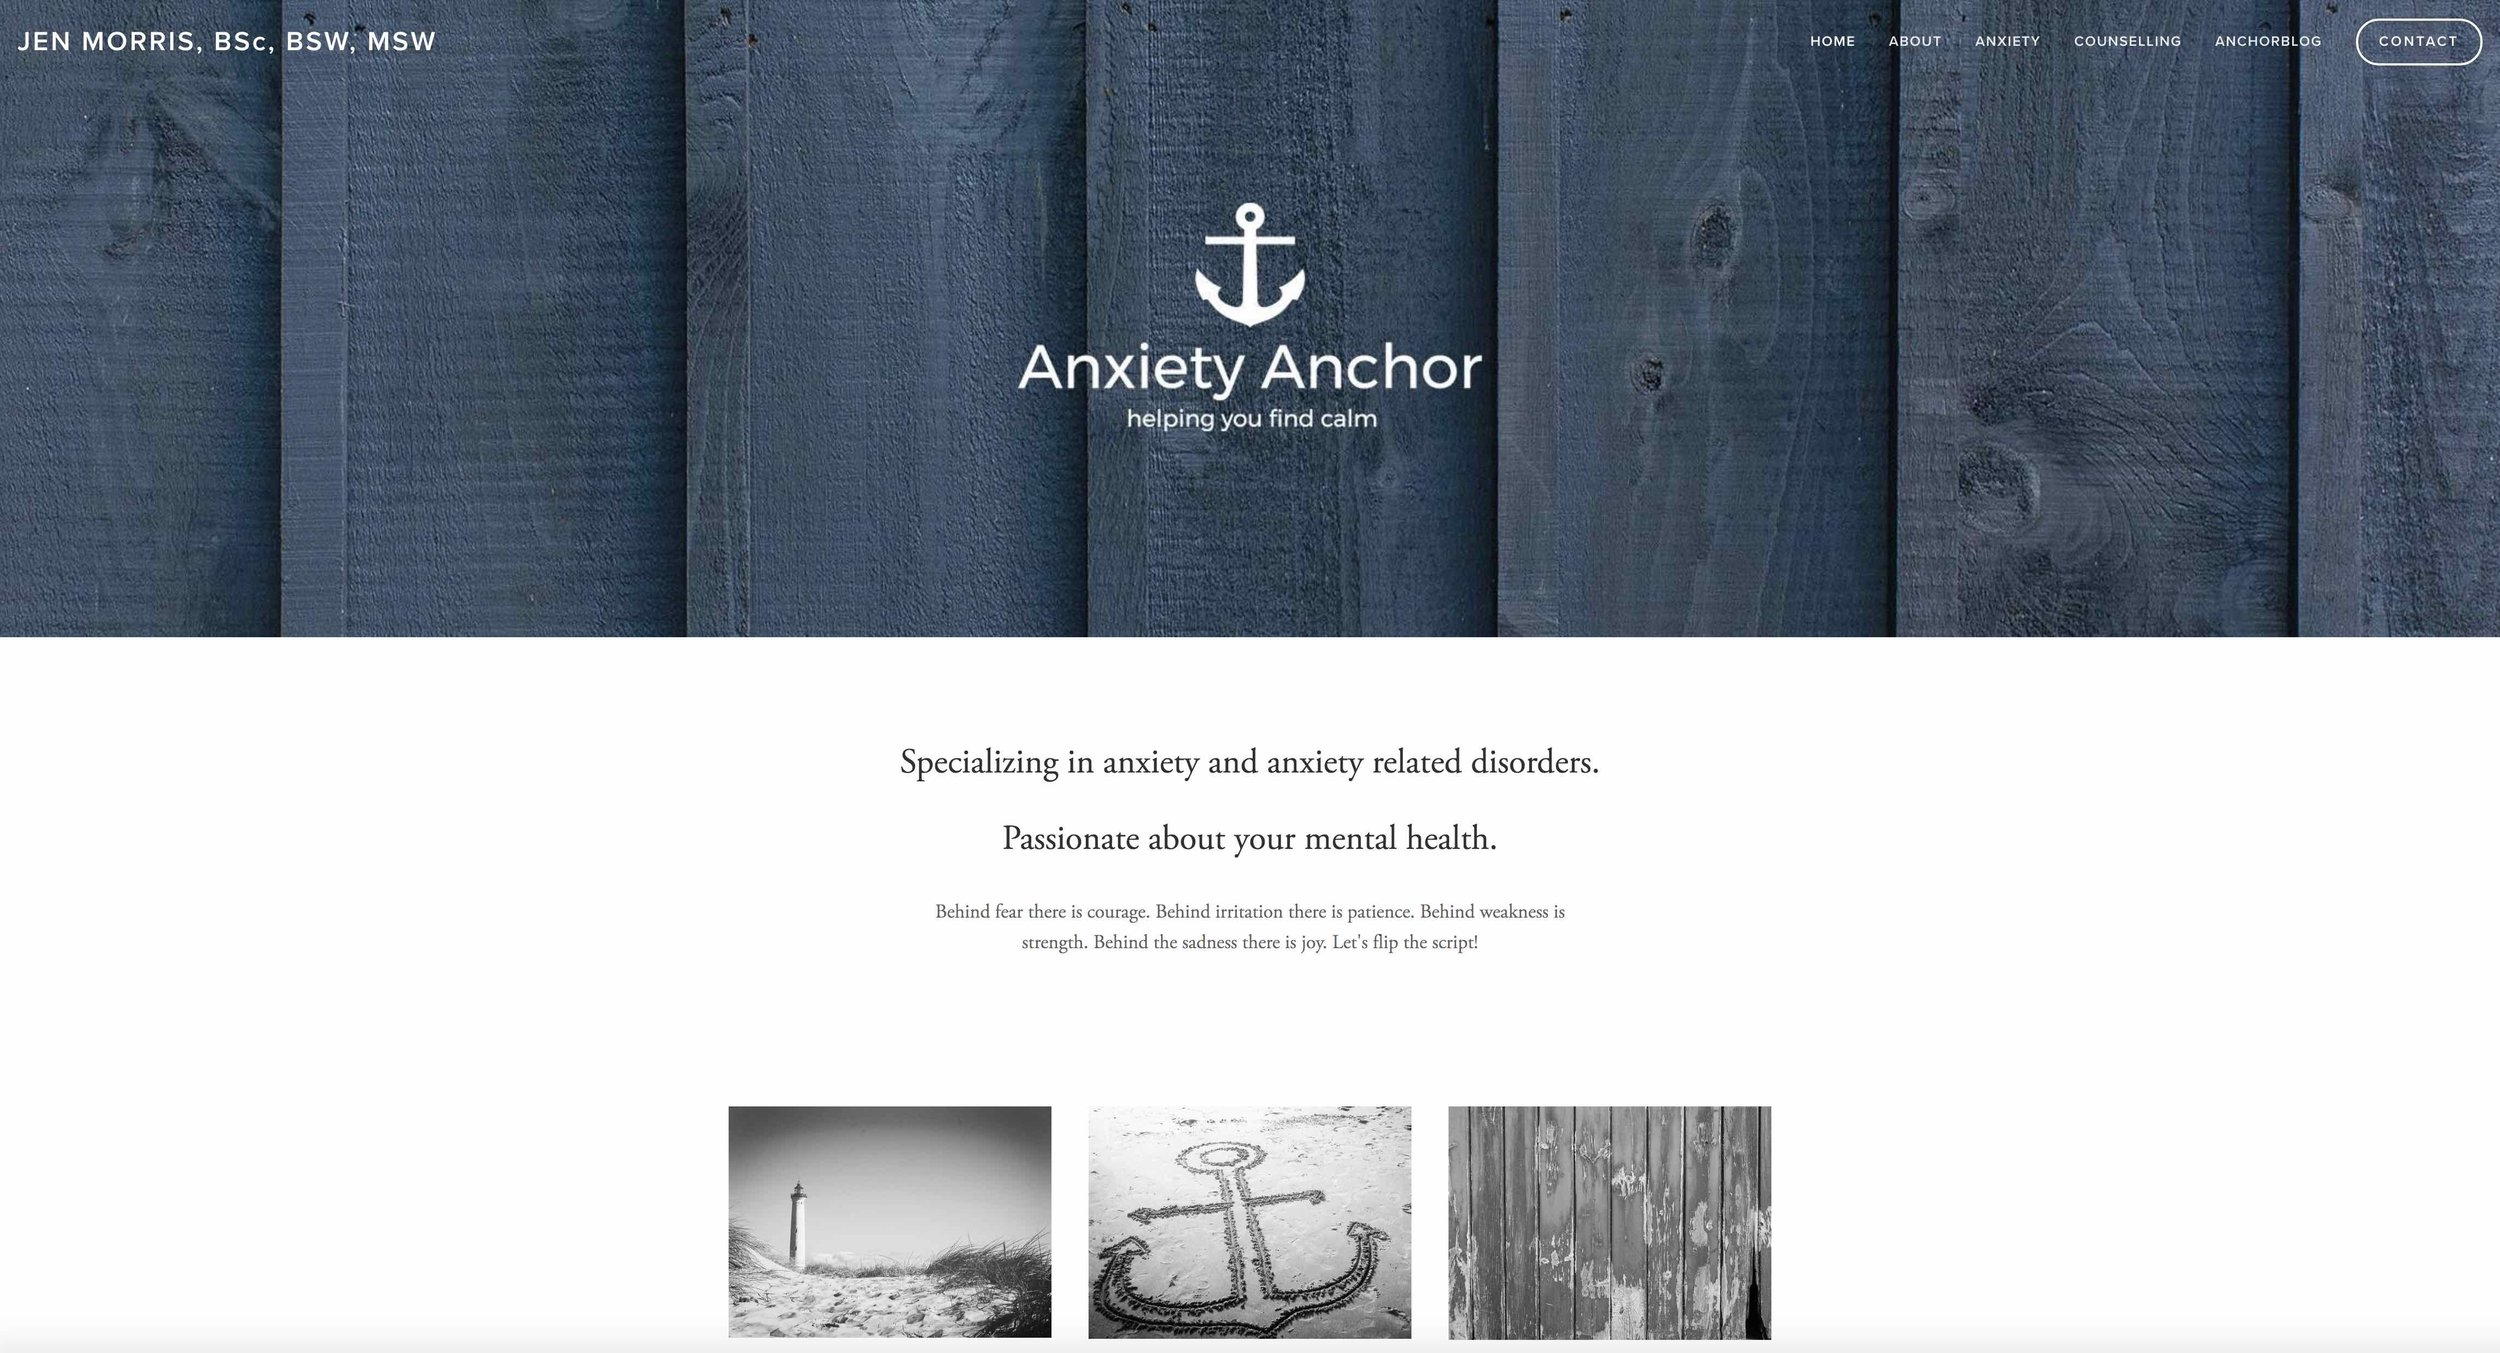 Anxiety Anchor